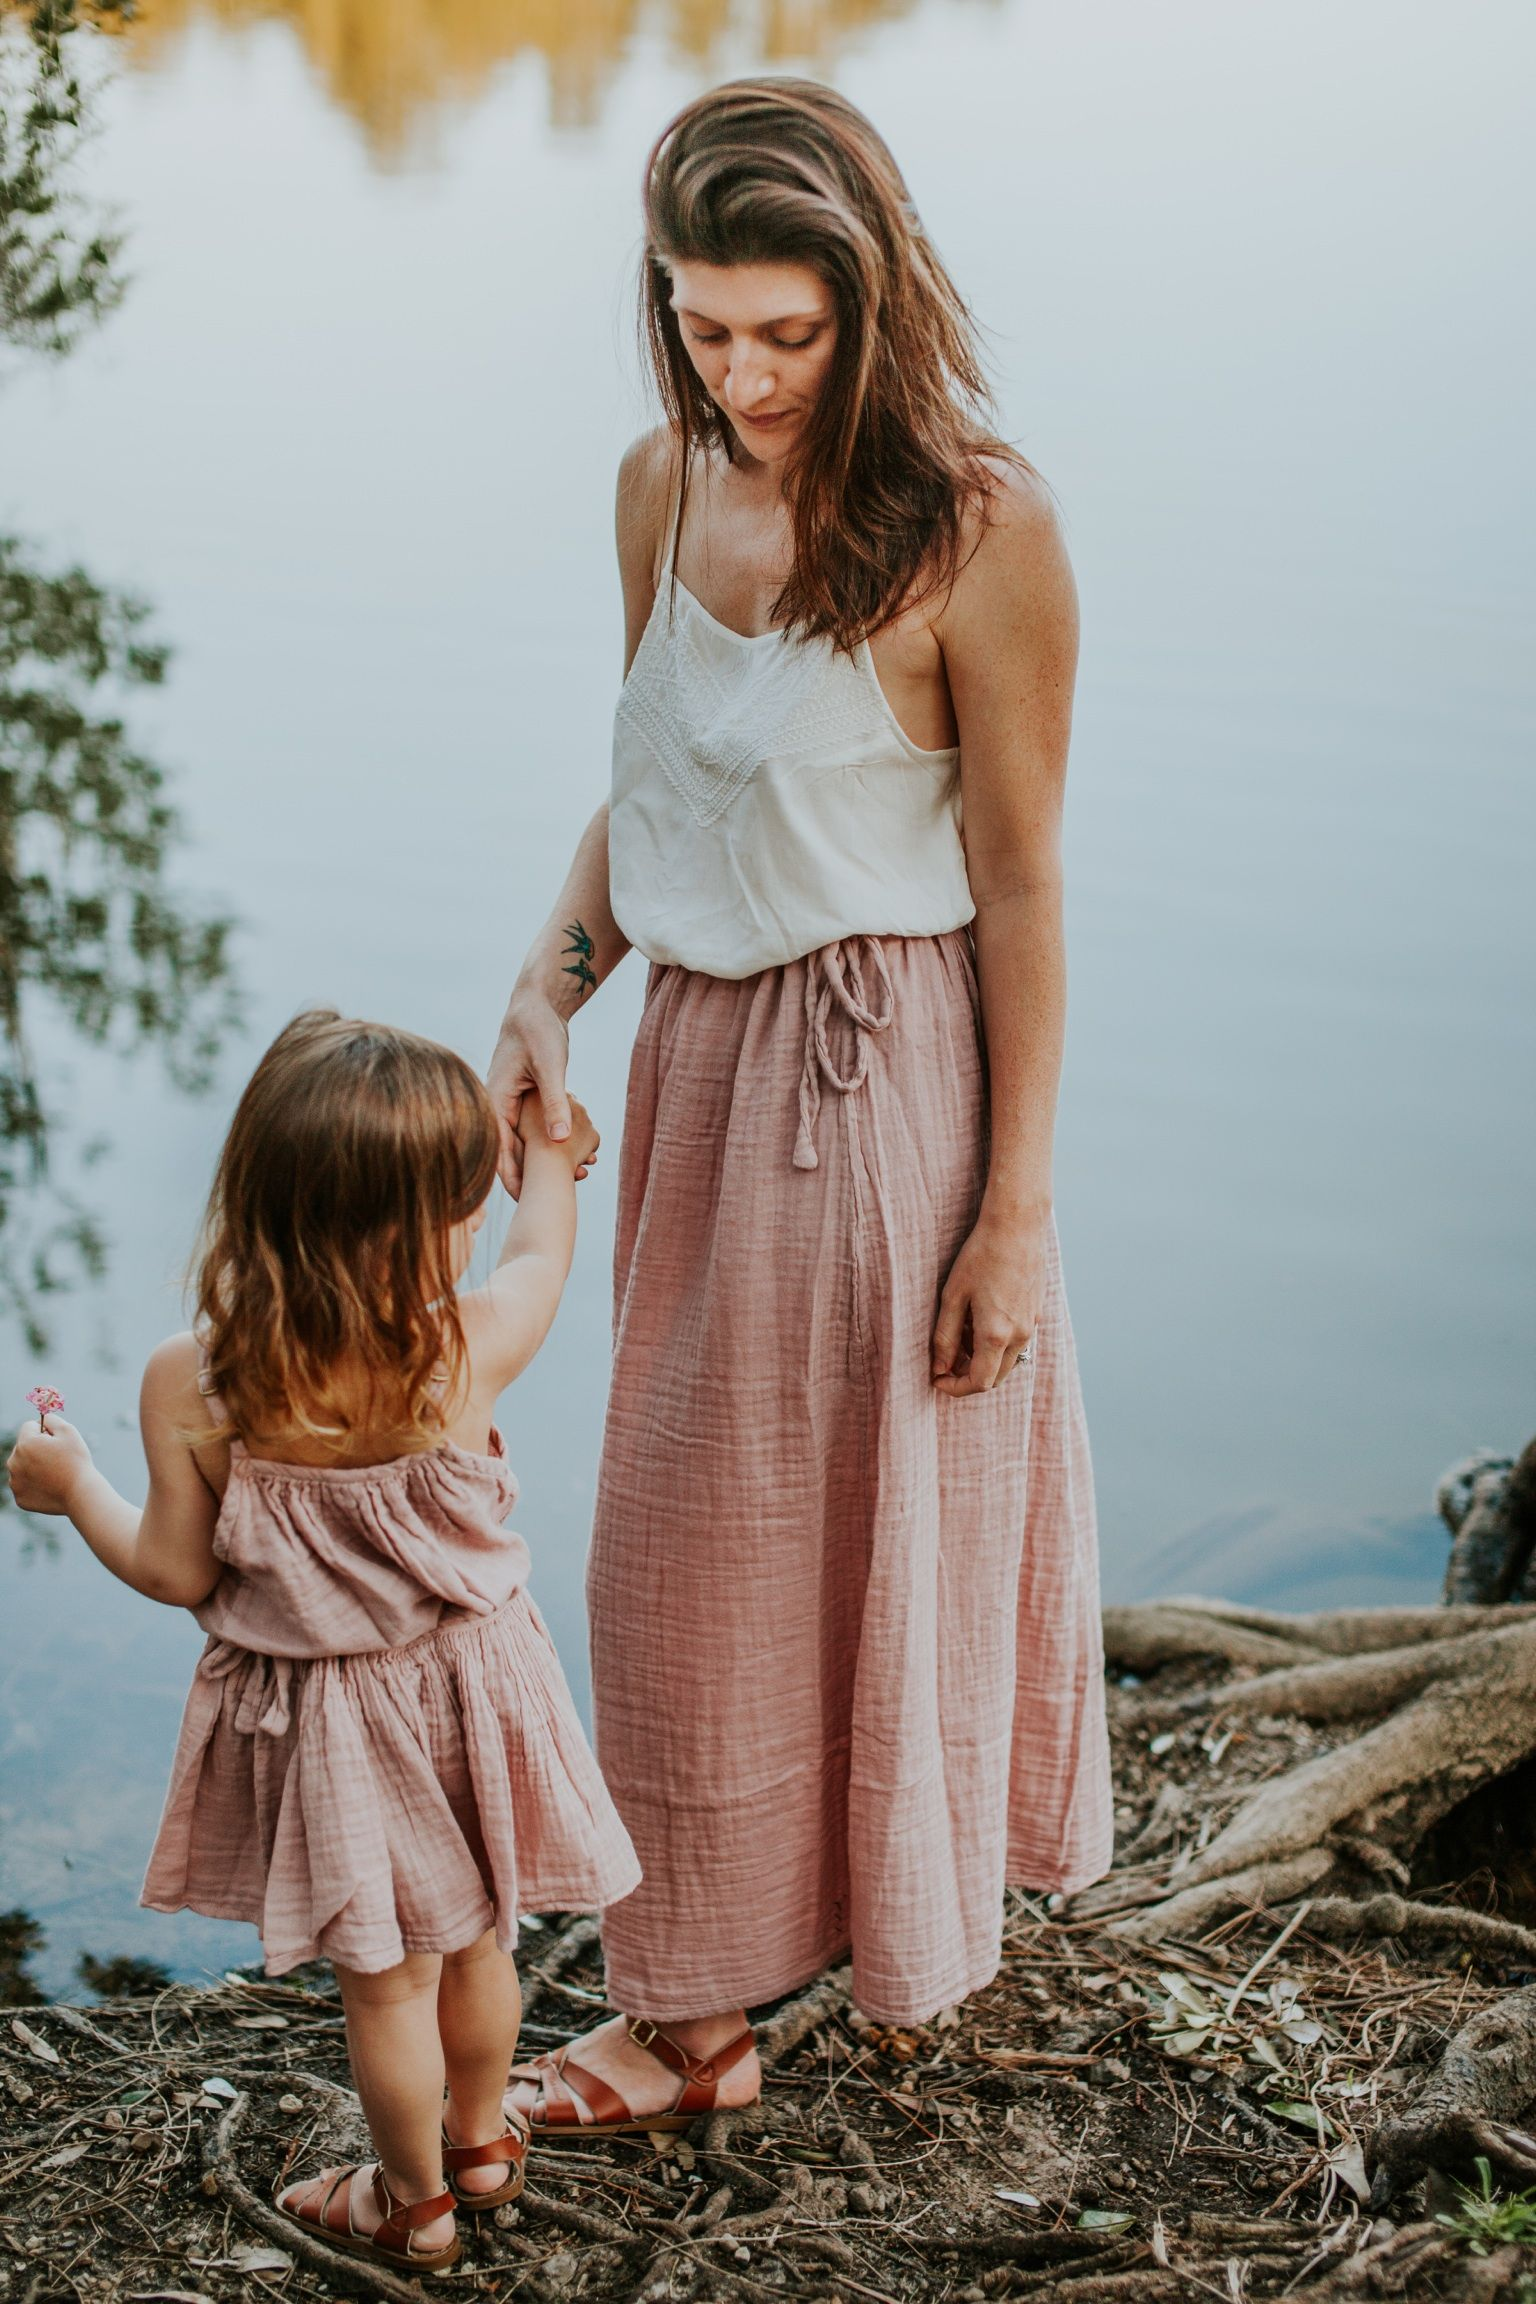 c47630f3fbb Numero 74 Ava Skirt (mum collection) Tuttu Skirt   Mia Singlet top in Dusty  Pink. Photography by Beth Philippidis in collaboration with Mabel s Garb.